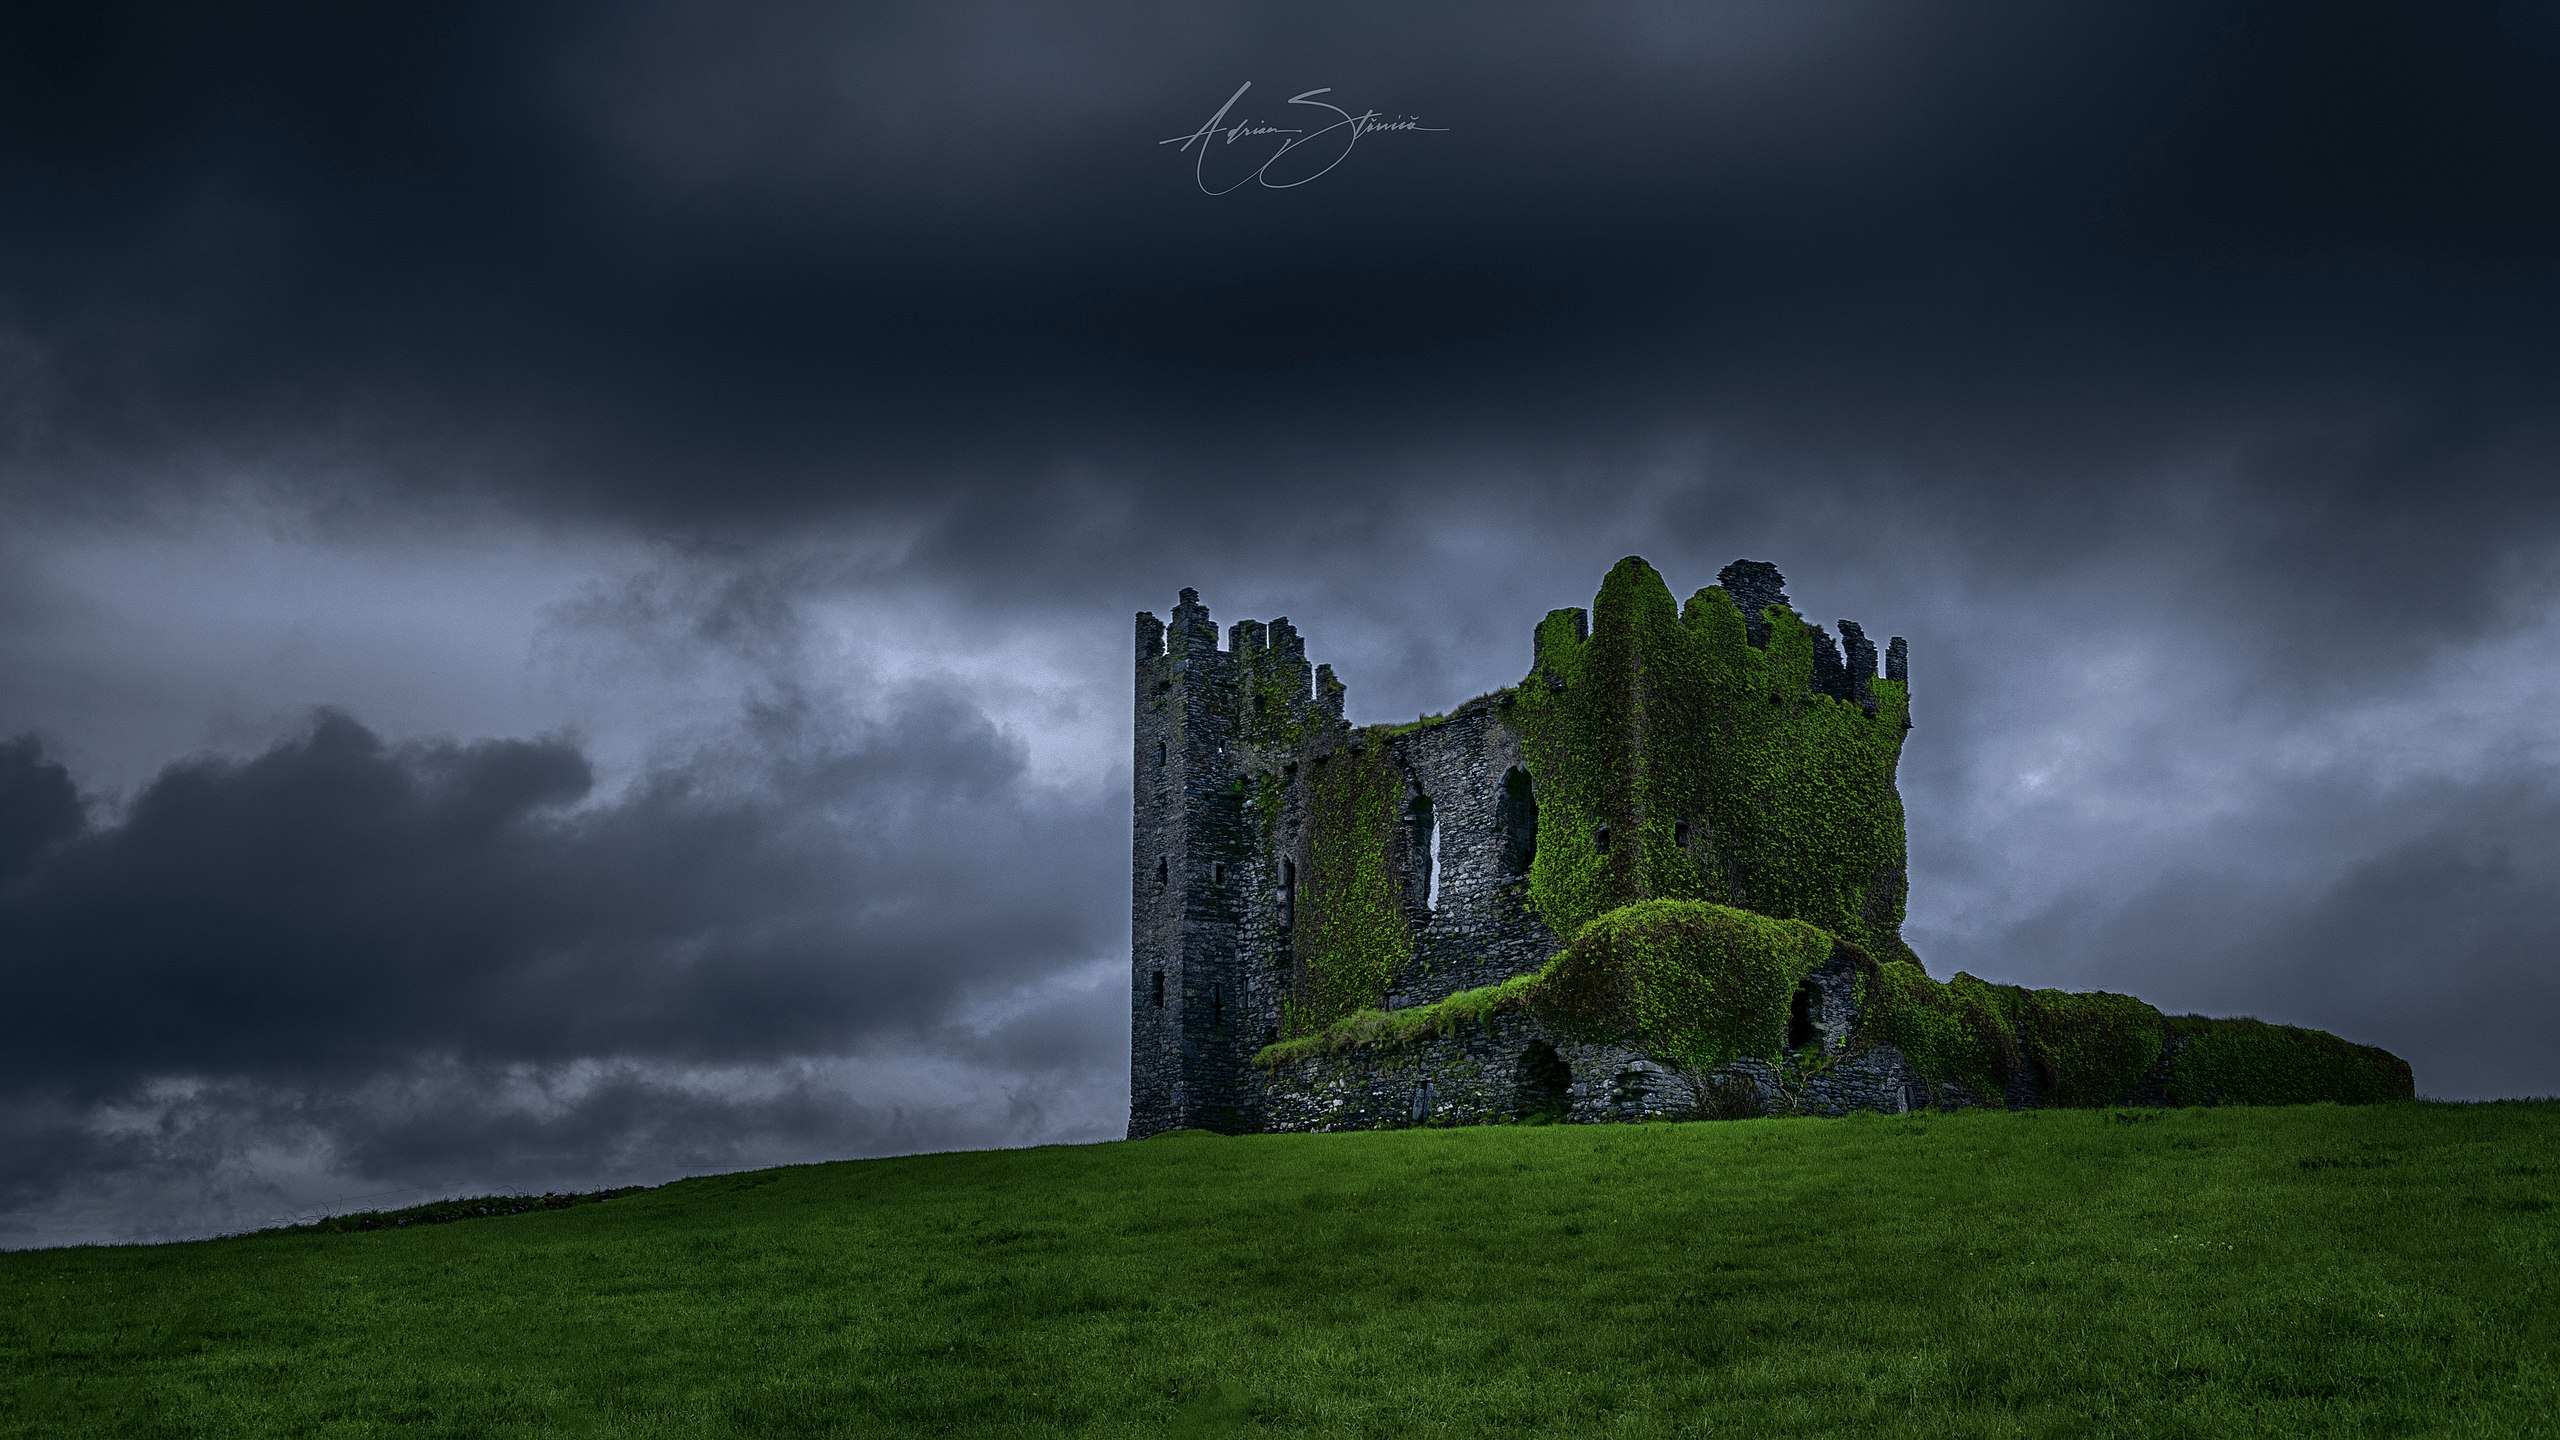 Professional photo of Ballycarbery Castle